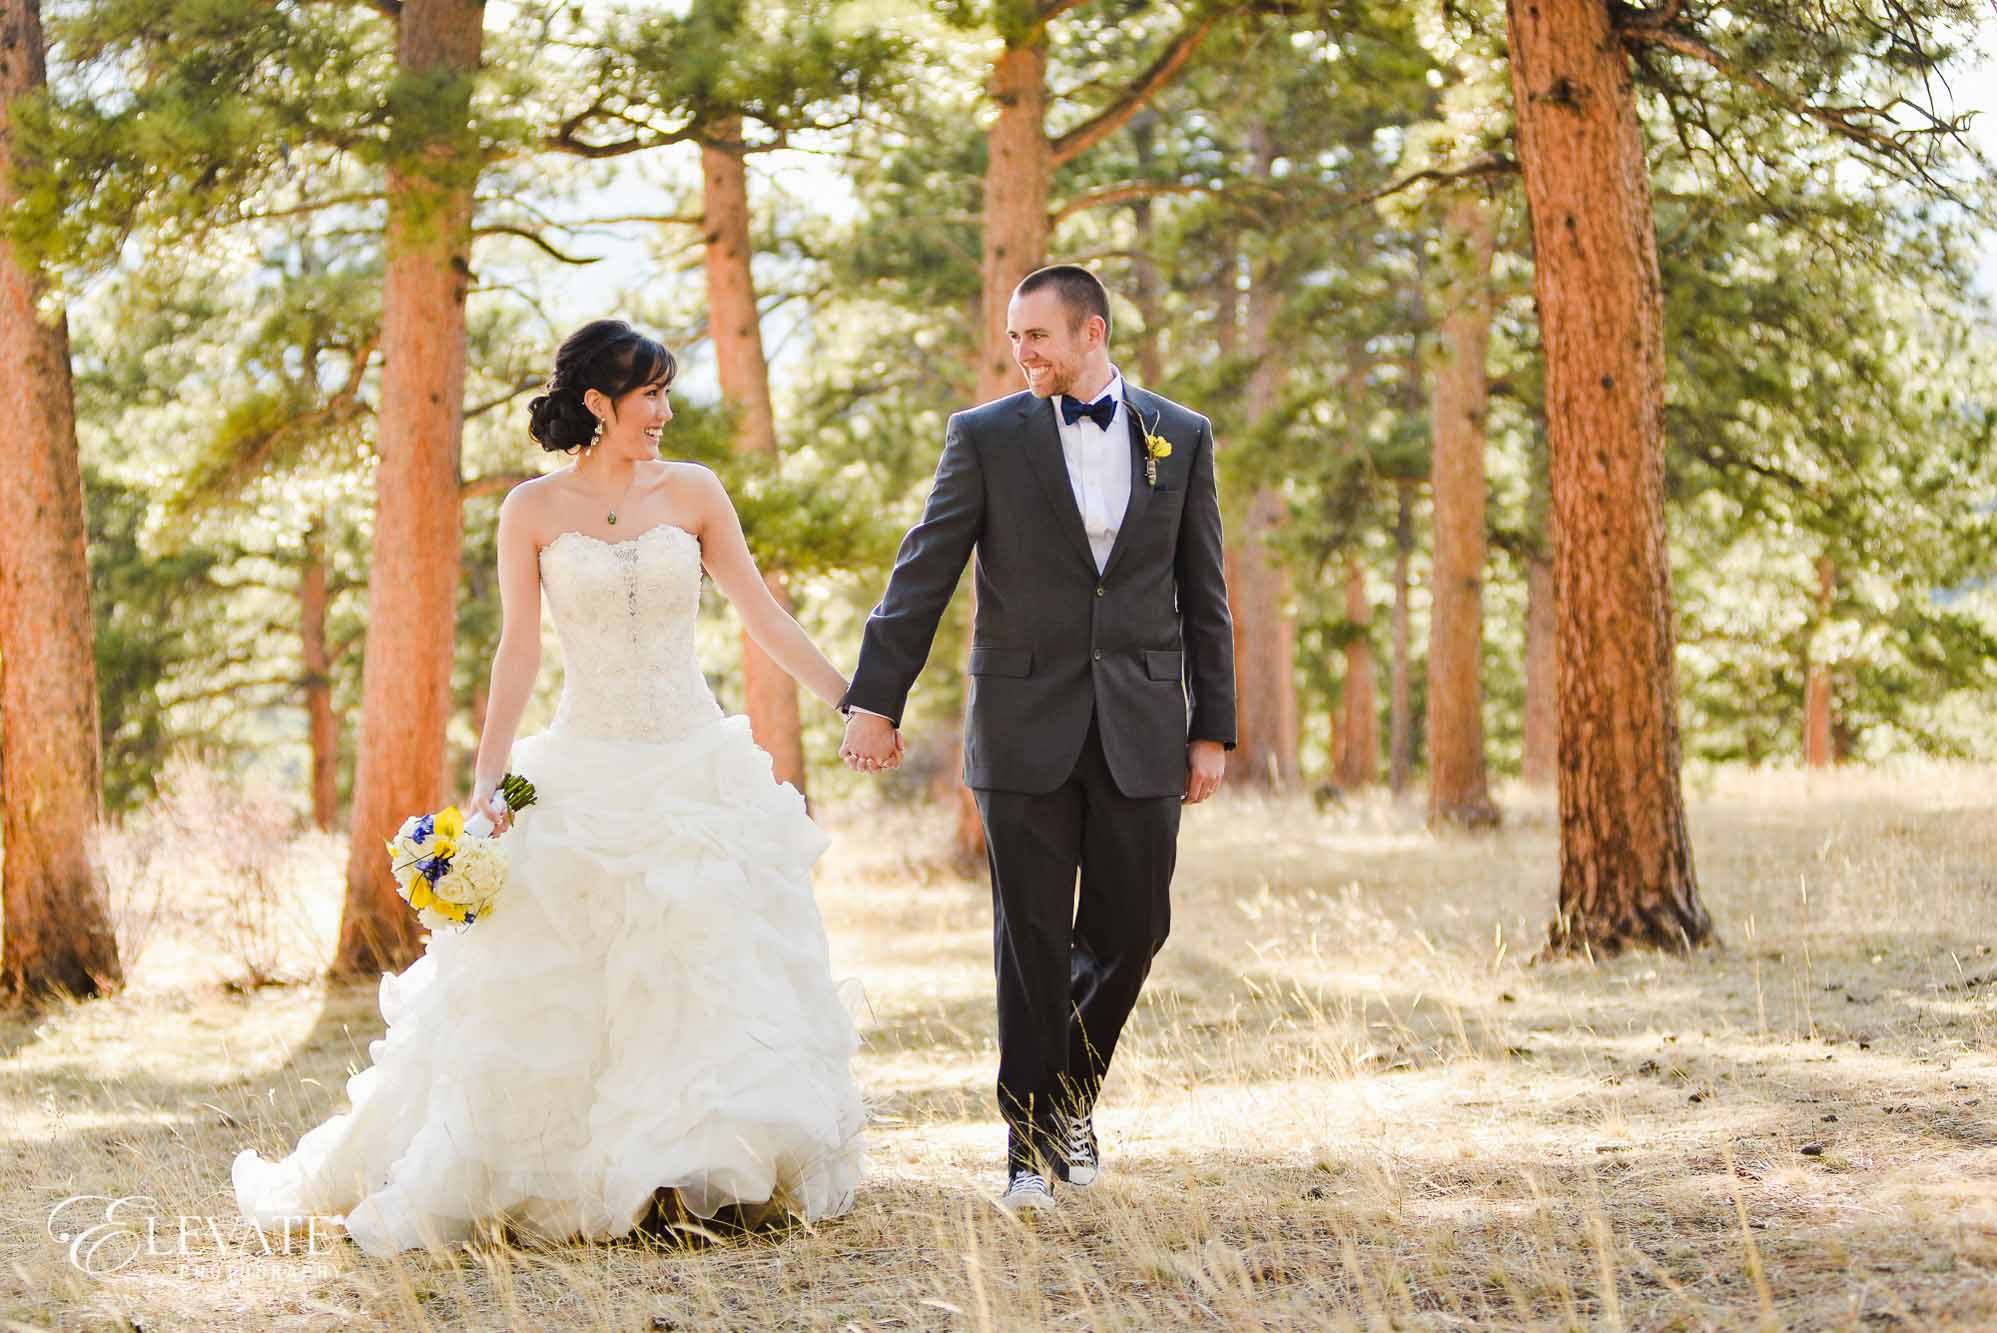 estes park wedding photos bride woods Della Terra